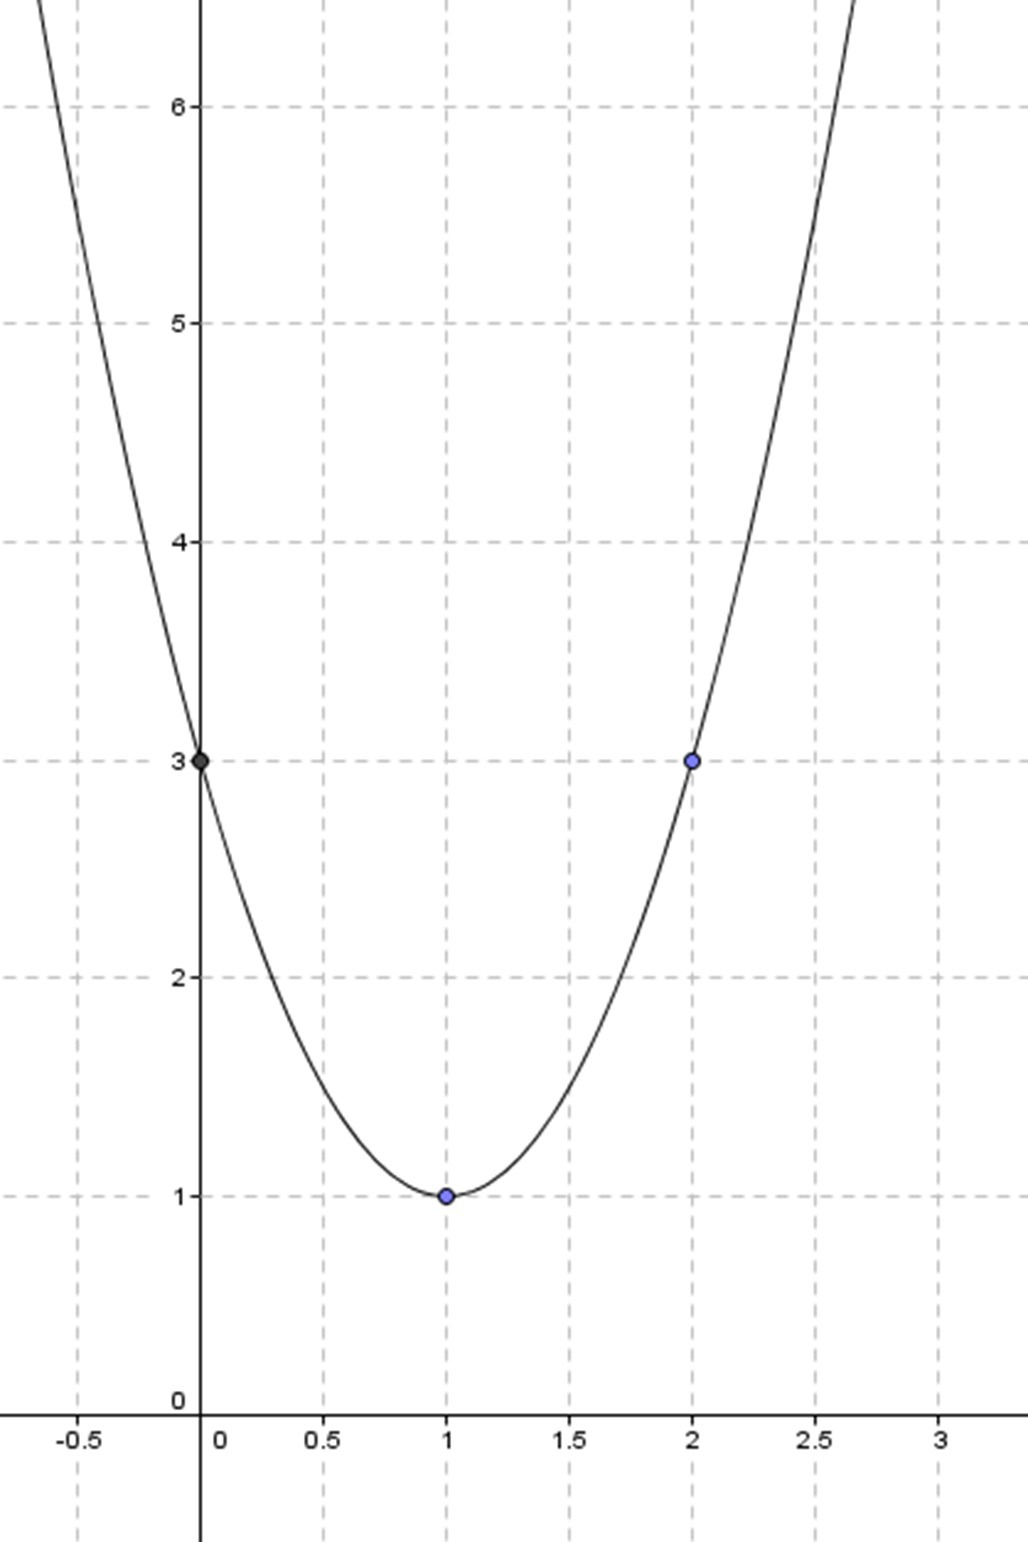 Draw A Function 2x2 4x 3